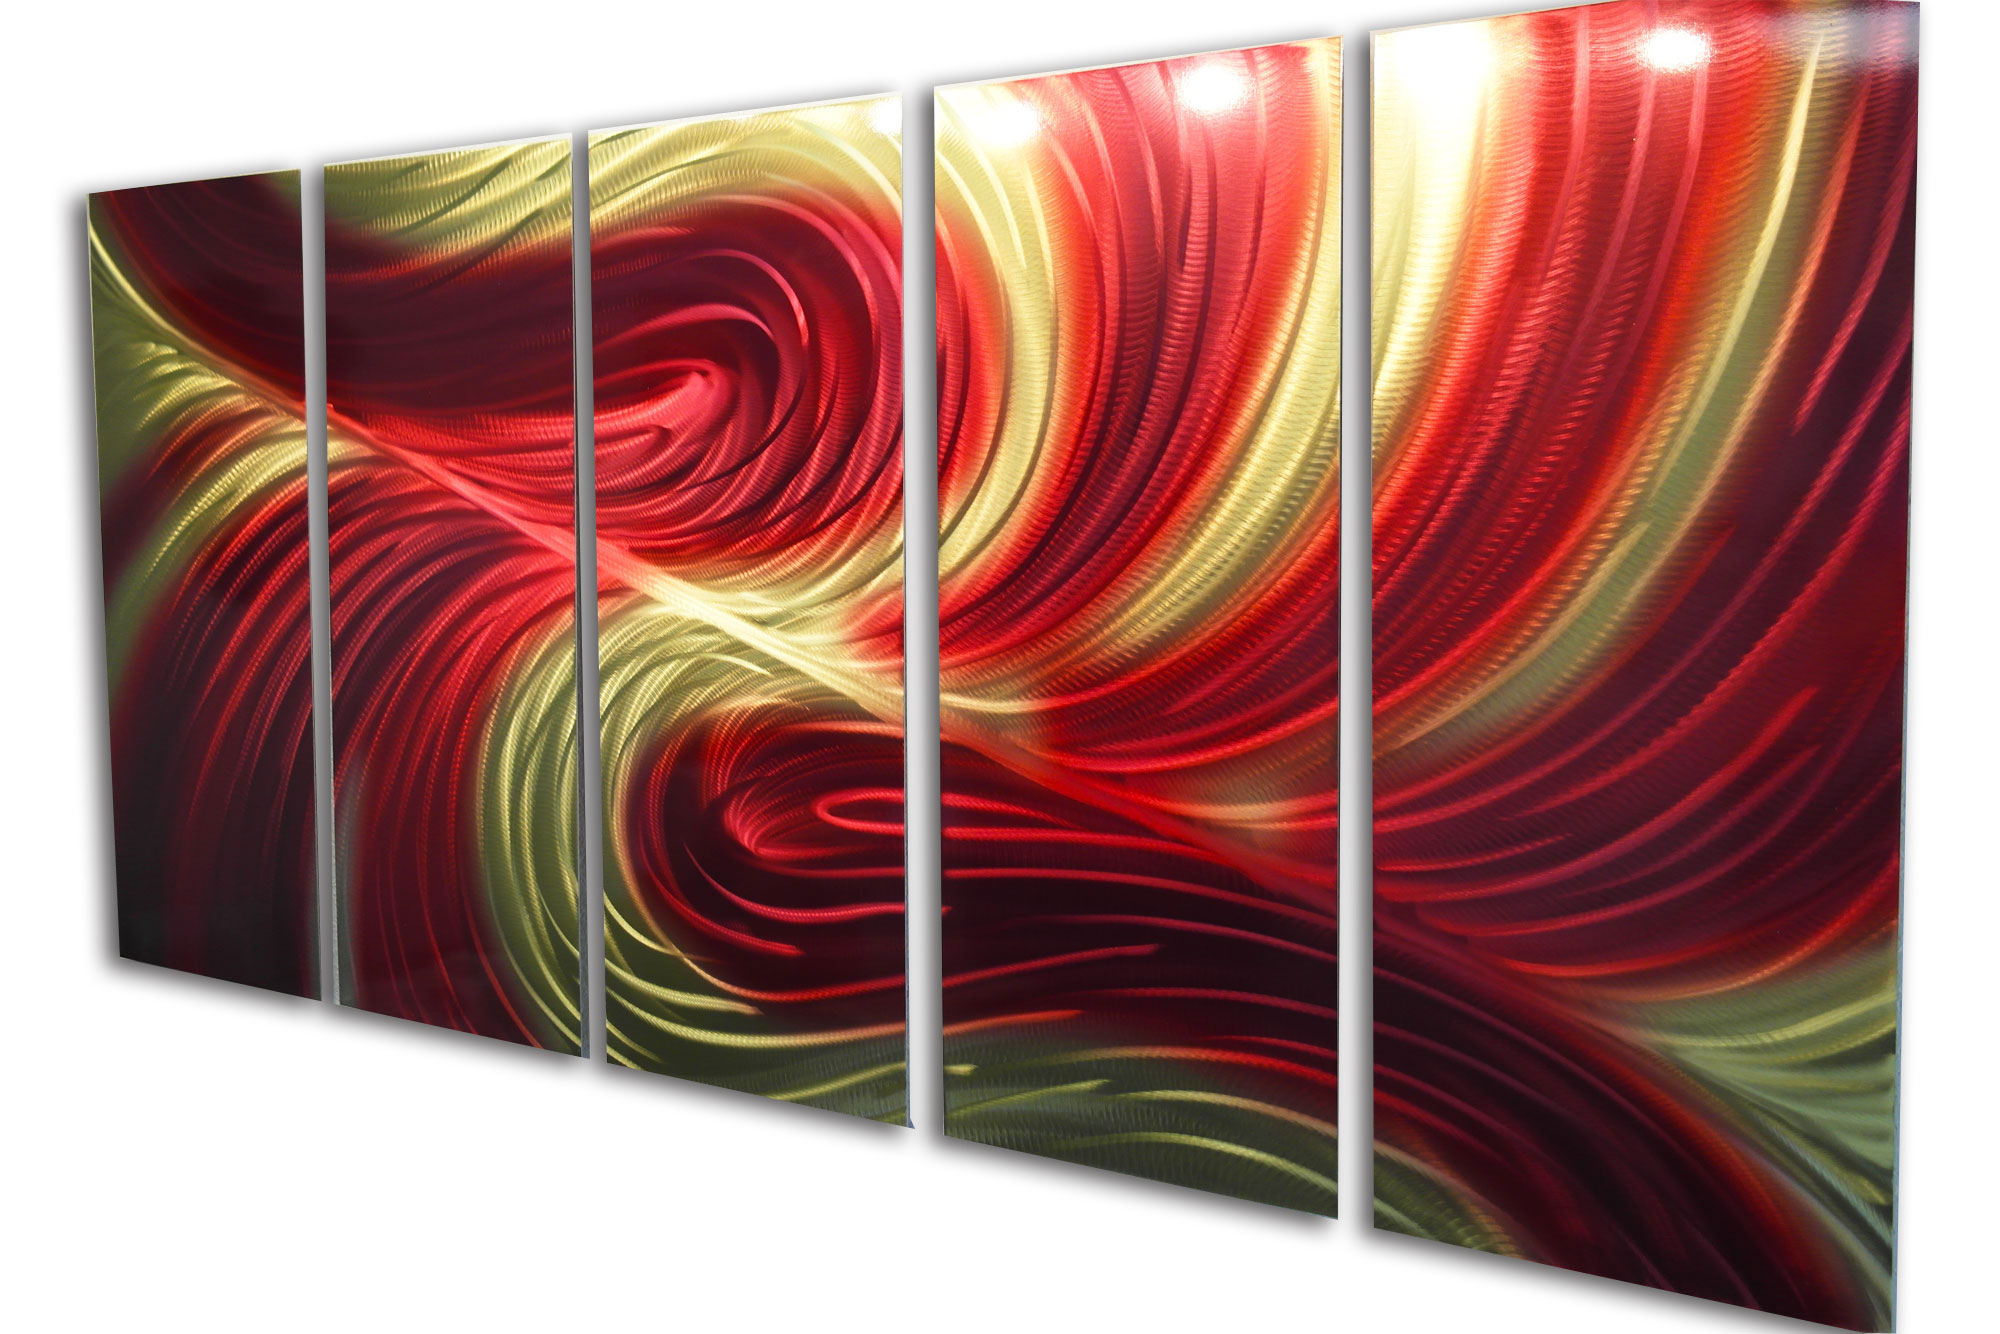 Red And Gold Metal Wall Art Echo Red Gold 36X79Metal Wall Art Abstract Sculpture Modern Decor